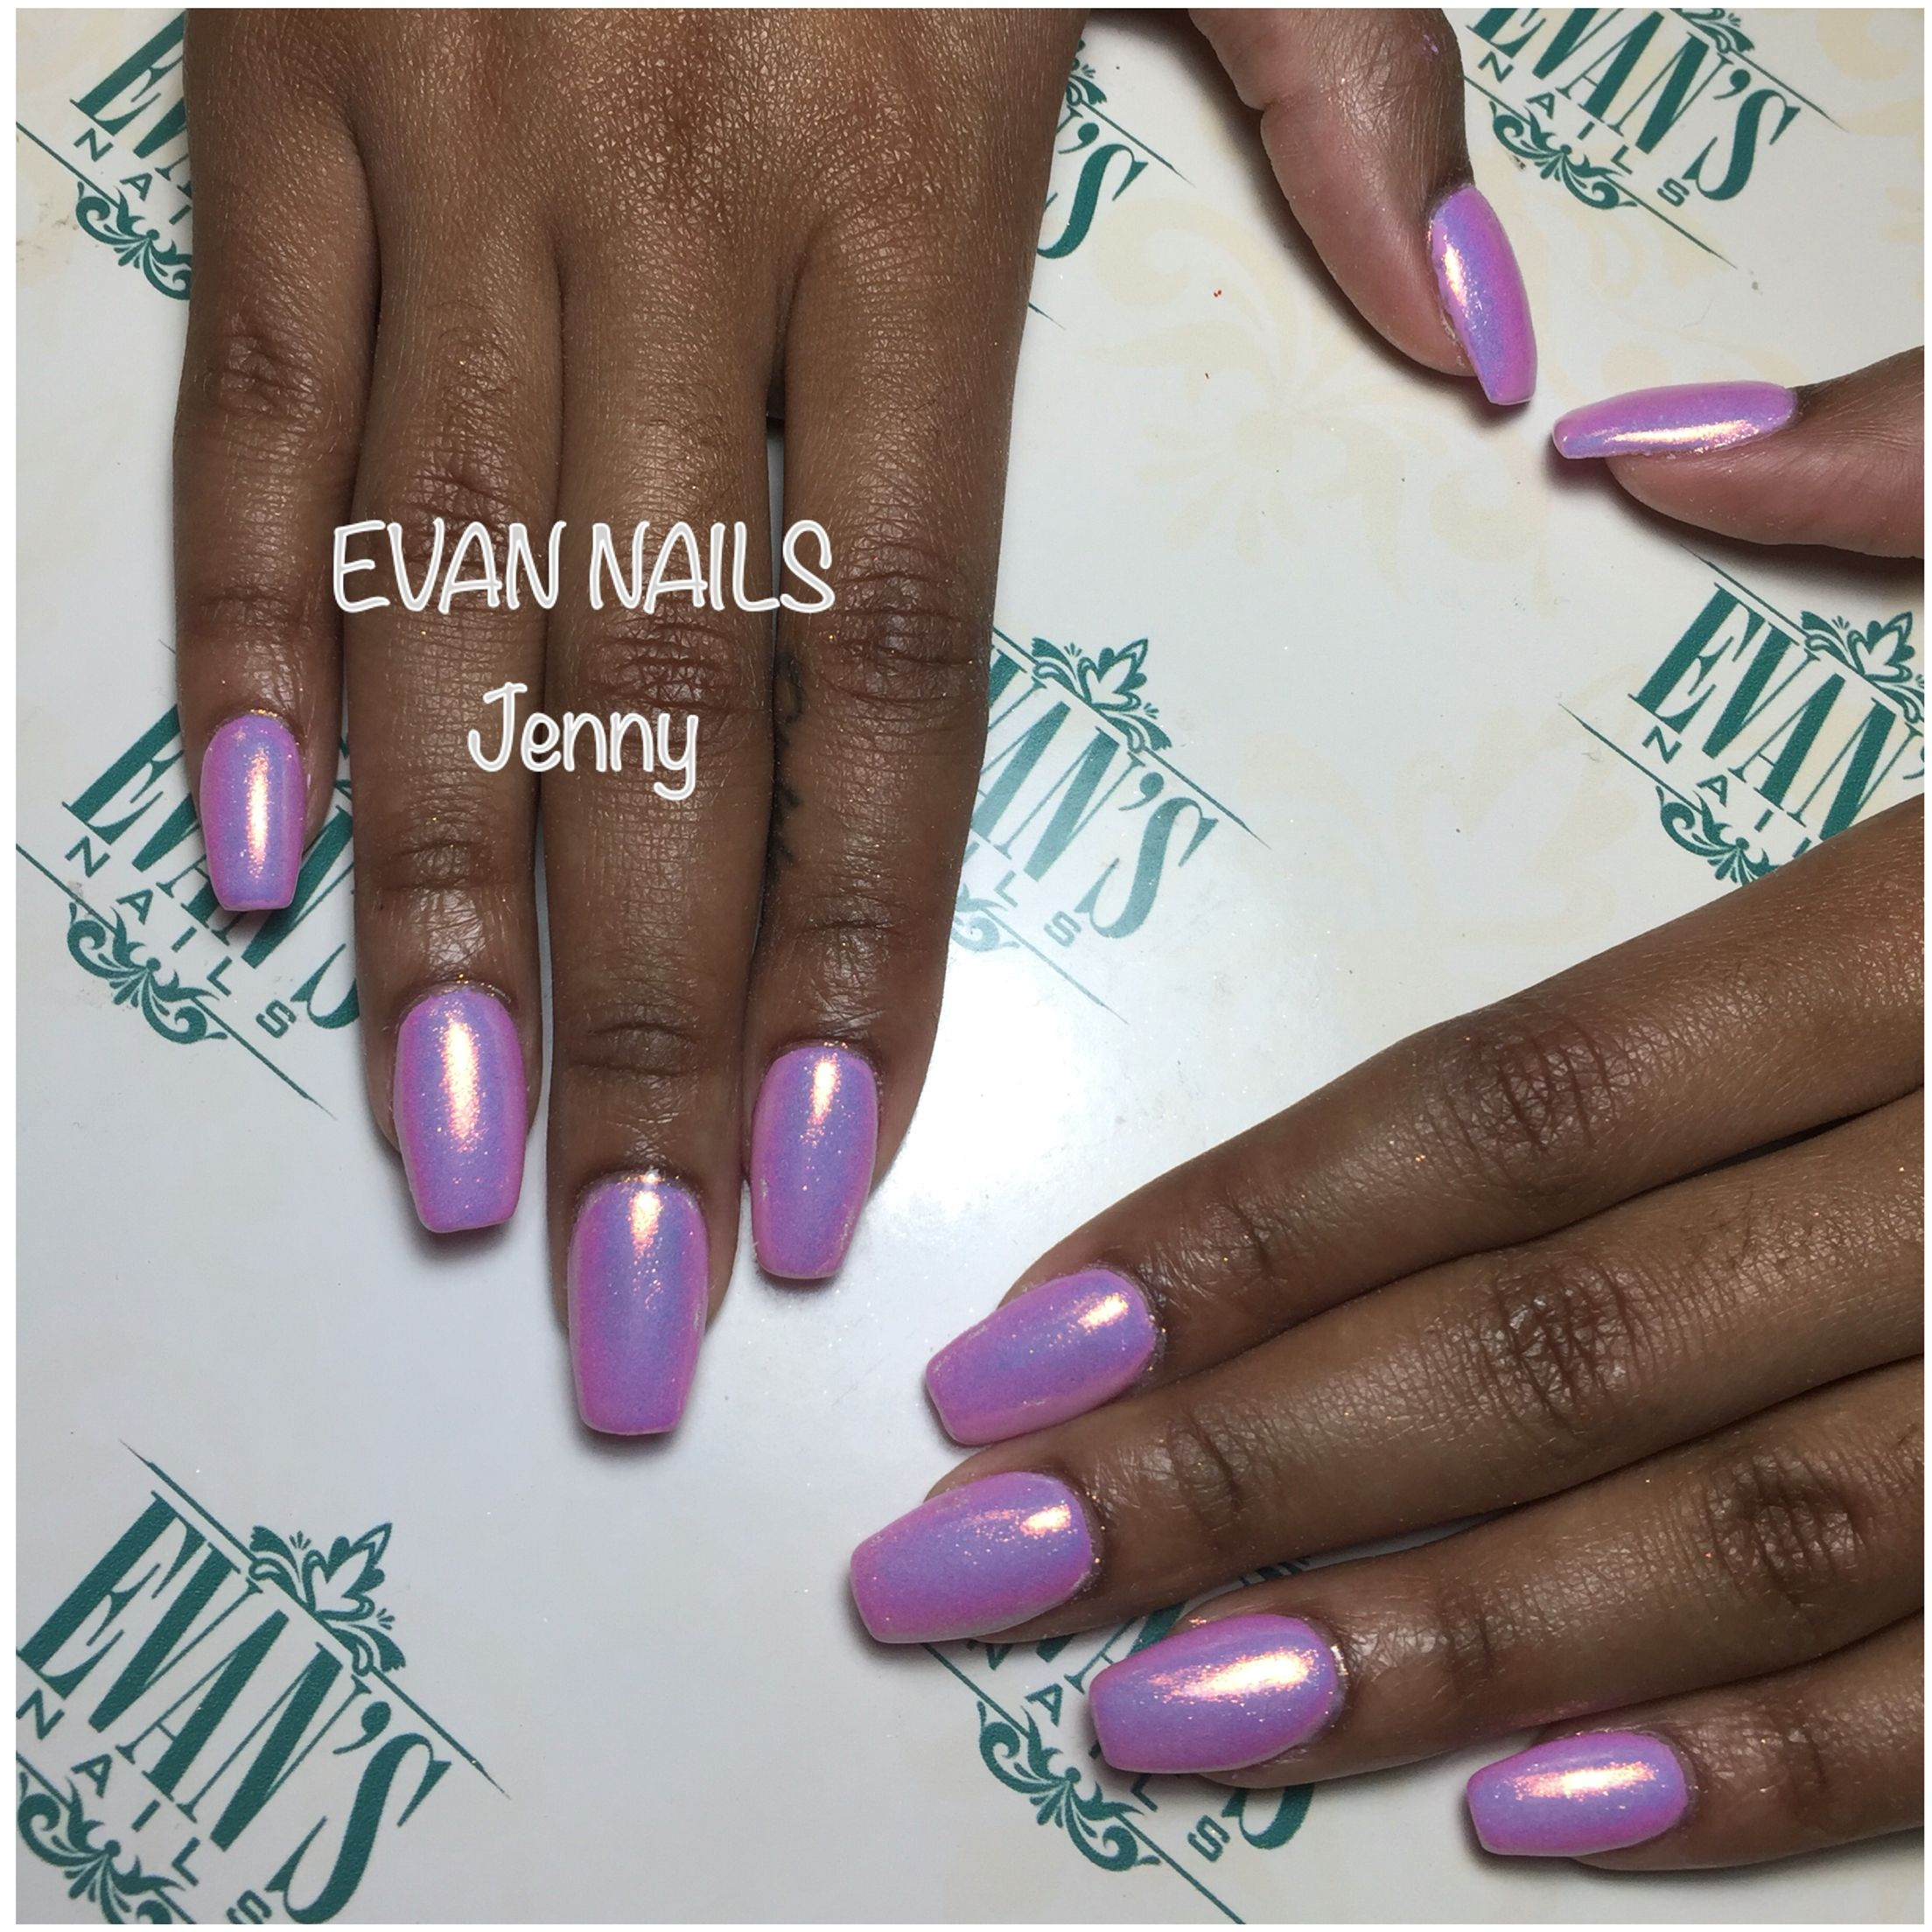 Evan Nails 2751 Gessner Rd Houston, TX 77080 713 895 8277 #nails ...